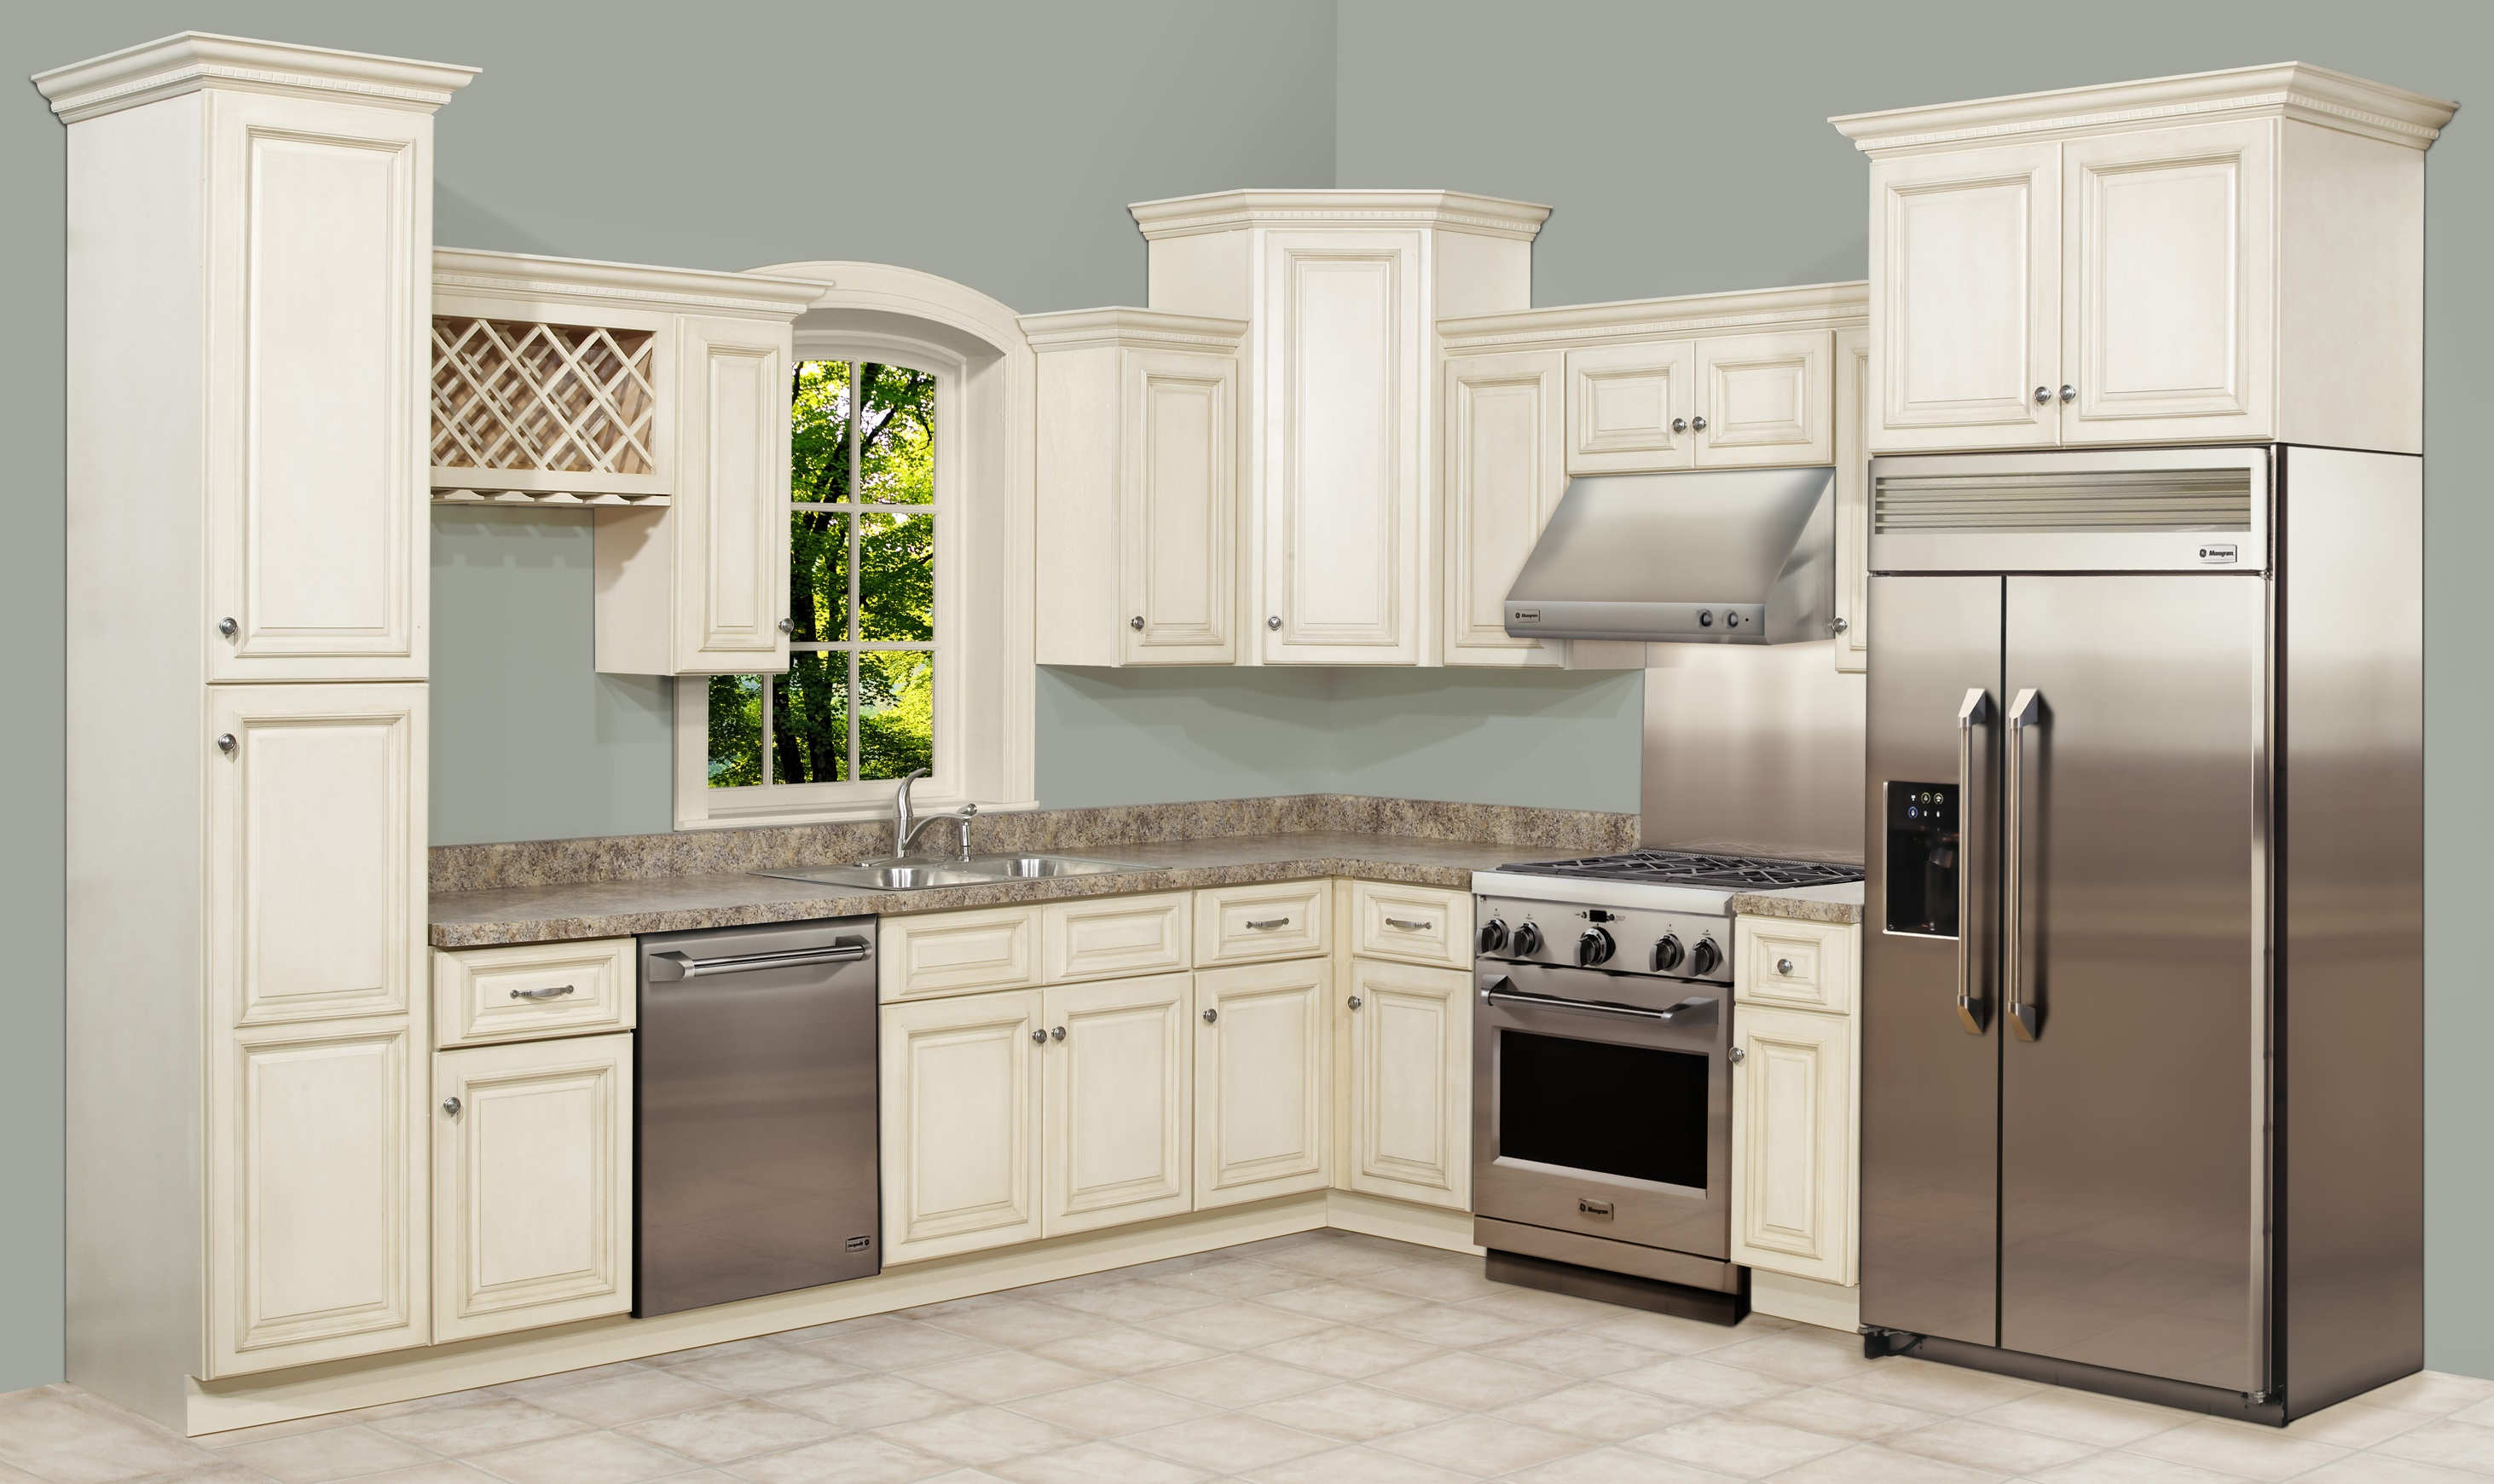 Rta kitchen cabinets review interesting conestoga wood for Best rta kitchen cabinets review